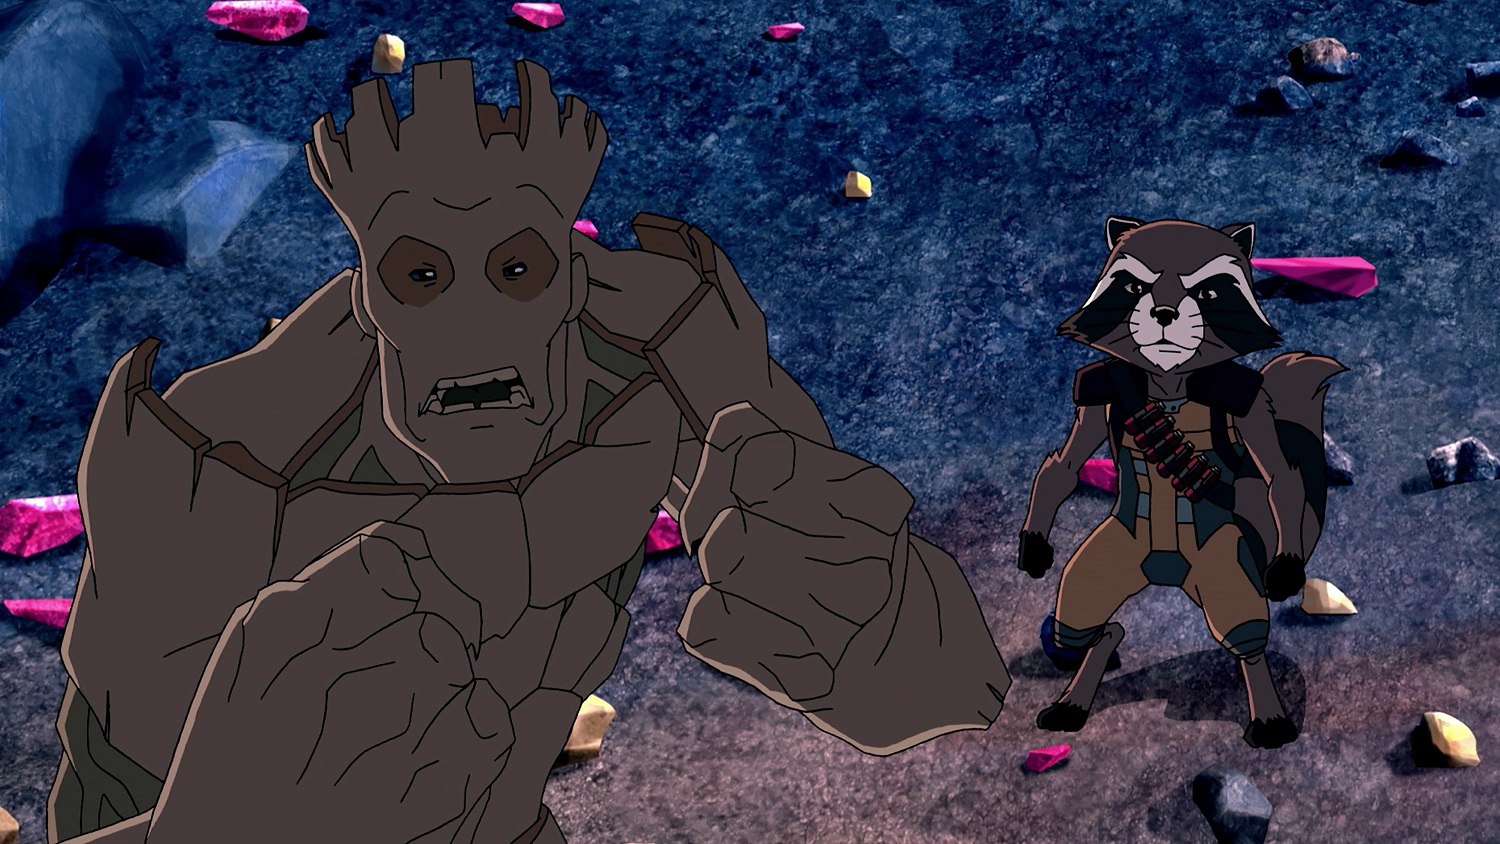 Groot and Rocket Raccoon in Marvel's Guardians of the Galaxy on Disney XD